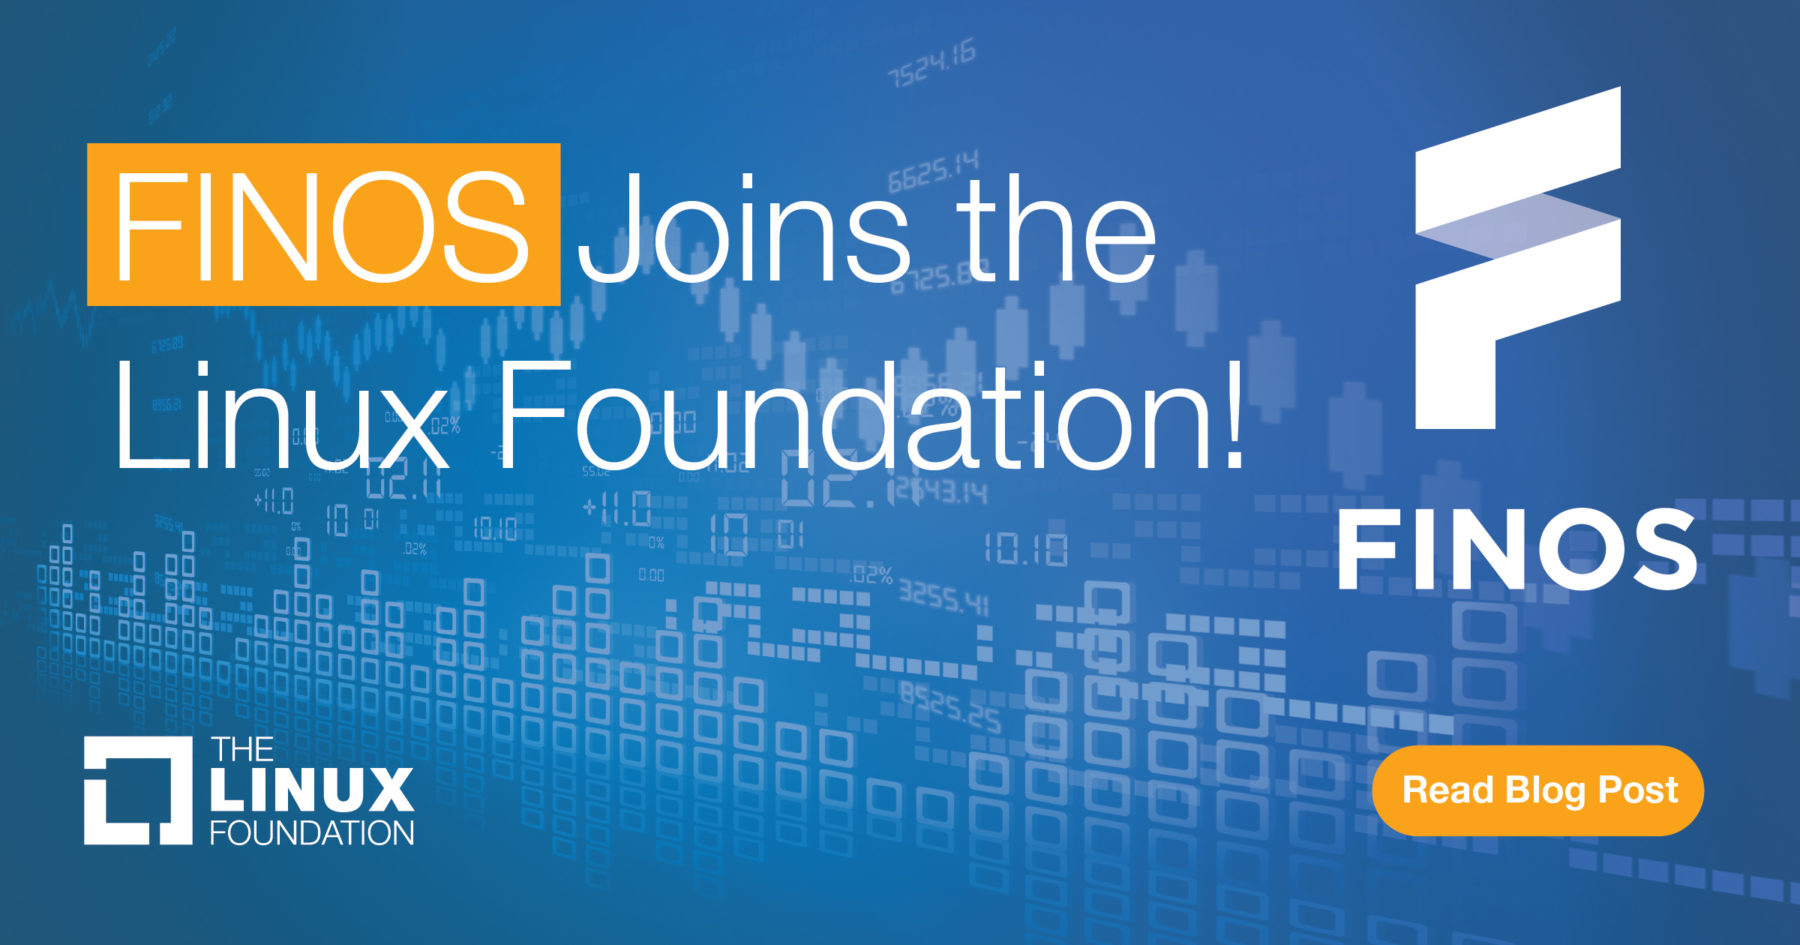 FINOS Joins the Linux Foundation